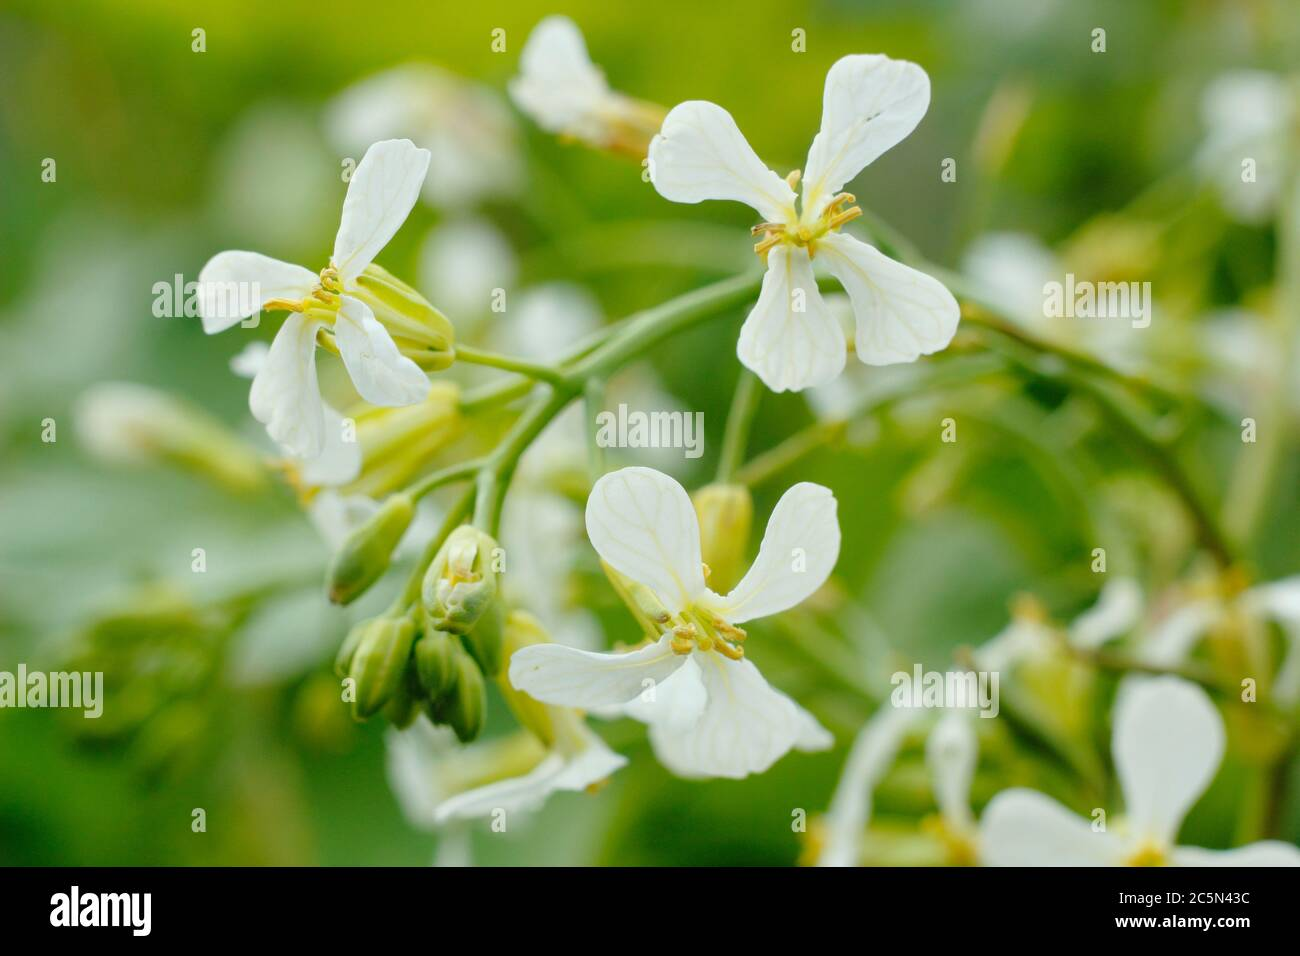 Raphanus sativus. Flowers of a bolted radish plant in an English potager garden. UK Stock Photo